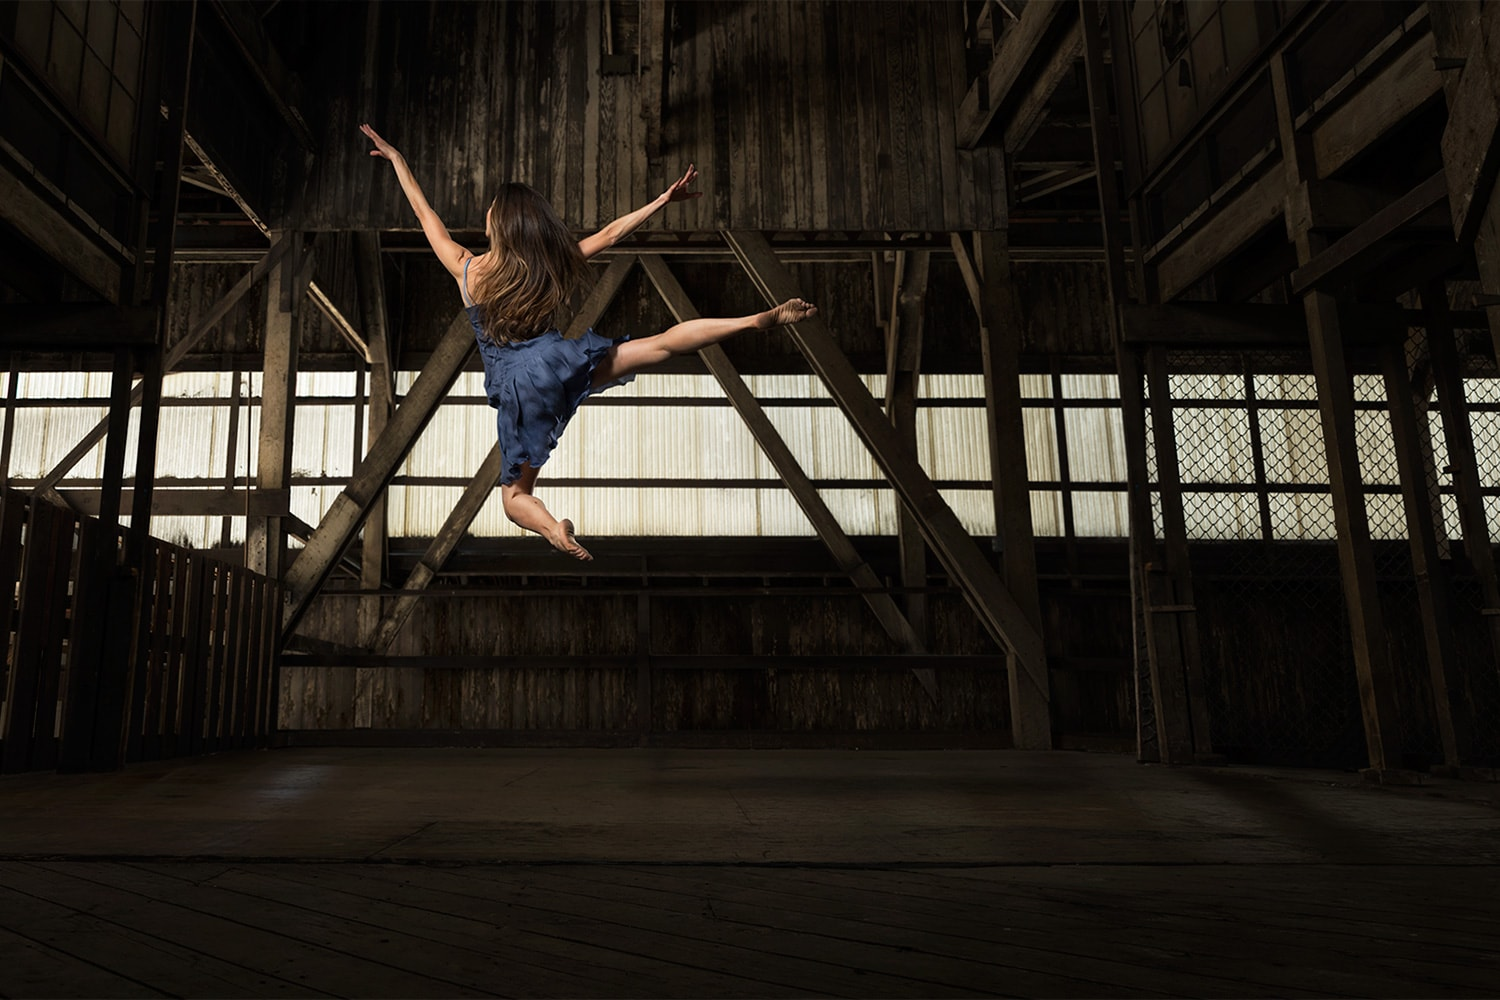 Female Ballerina Ballet jumping wearing a blue outfit dancing in a wood warehouse Photographer Rod McLean